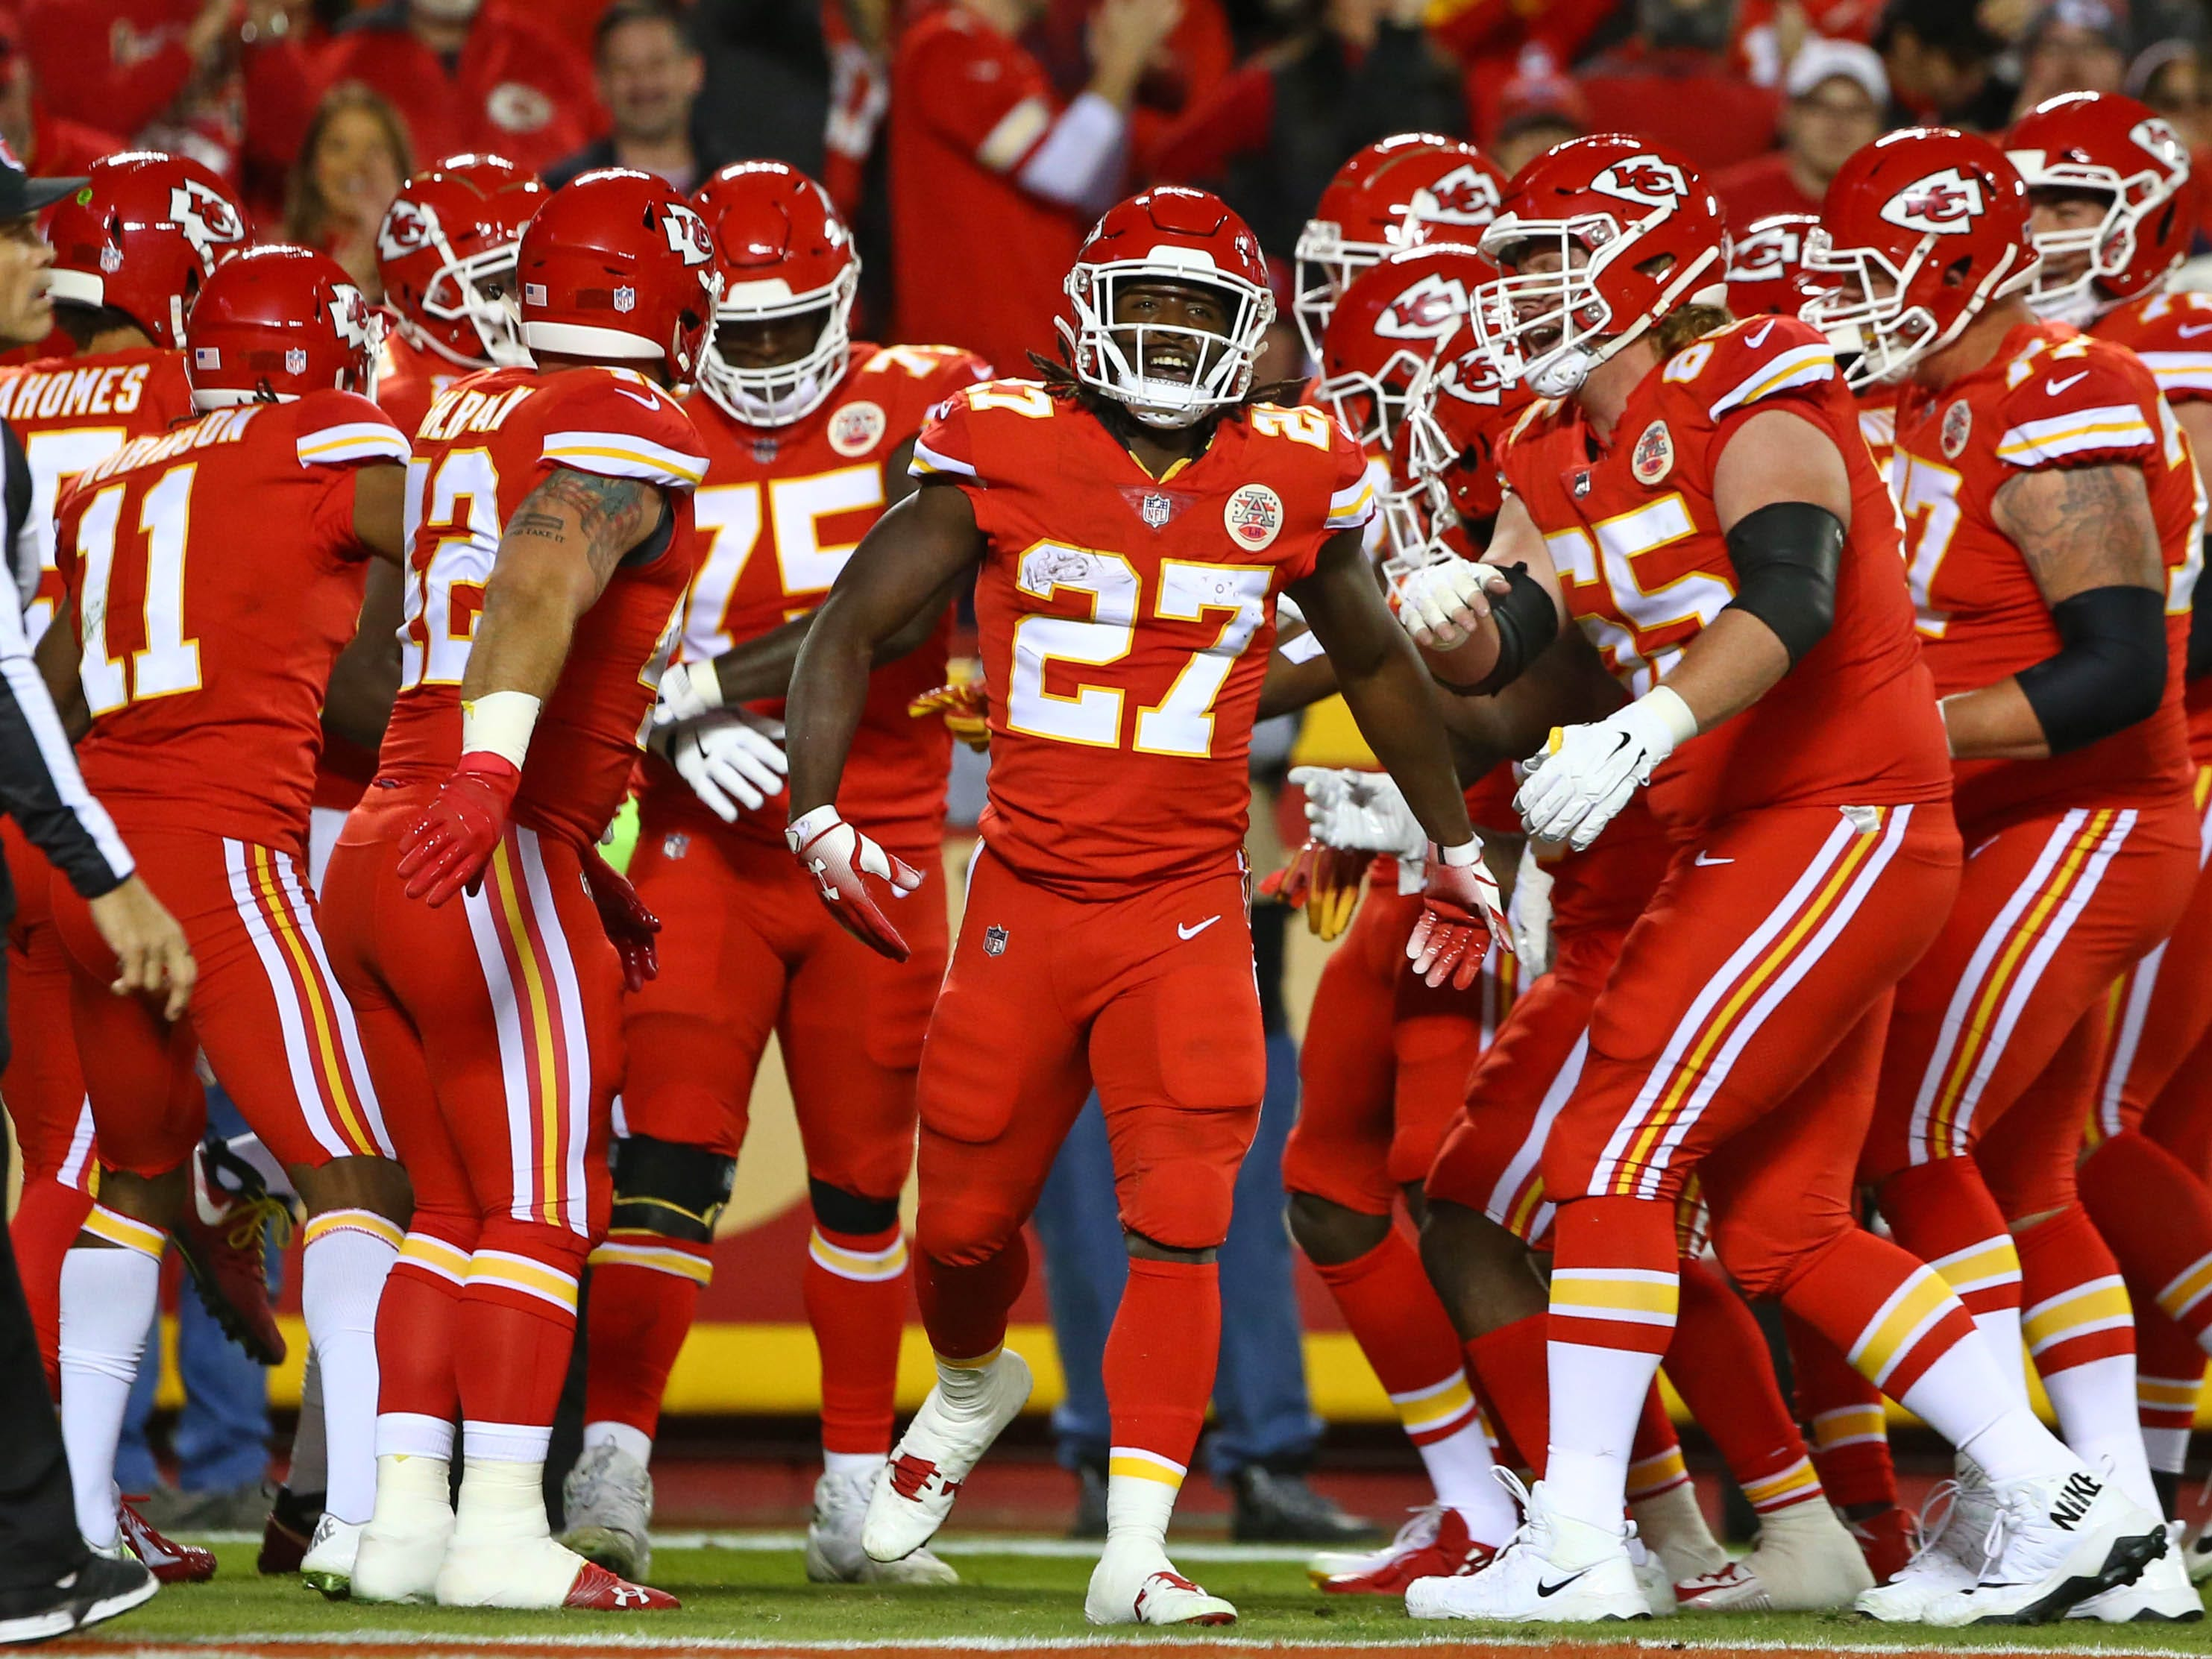 Kansas City Chiefs running back Kareem Hunt (27) is congratulated by teammates after scoring a touchdown against the Cincinnati Bengals in the first half at Arrowhead Stadium.